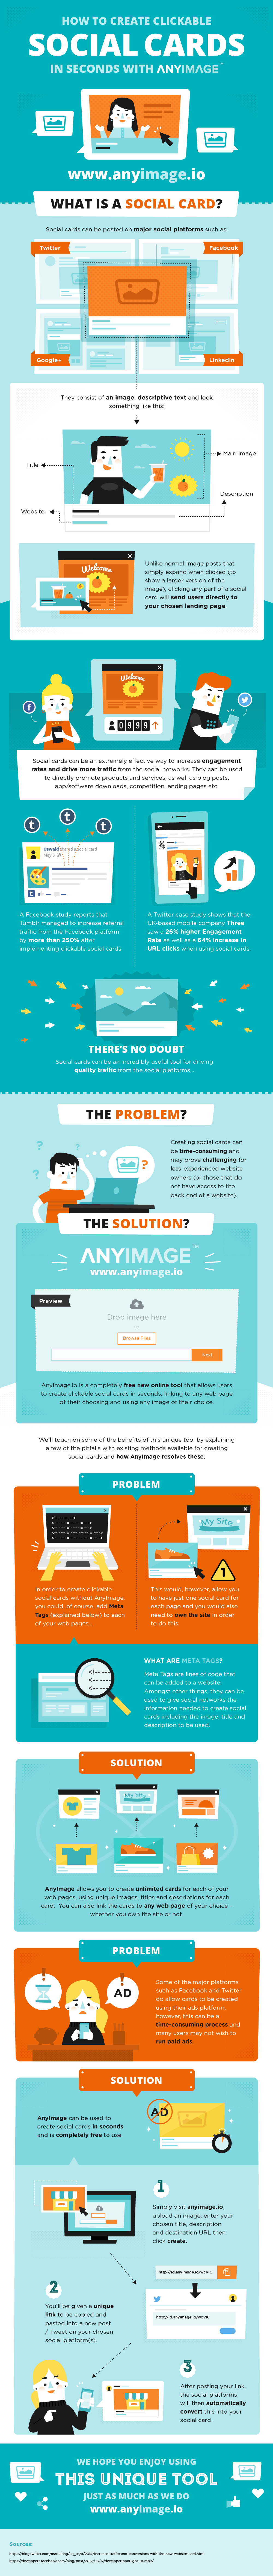 AnyImage Infographic